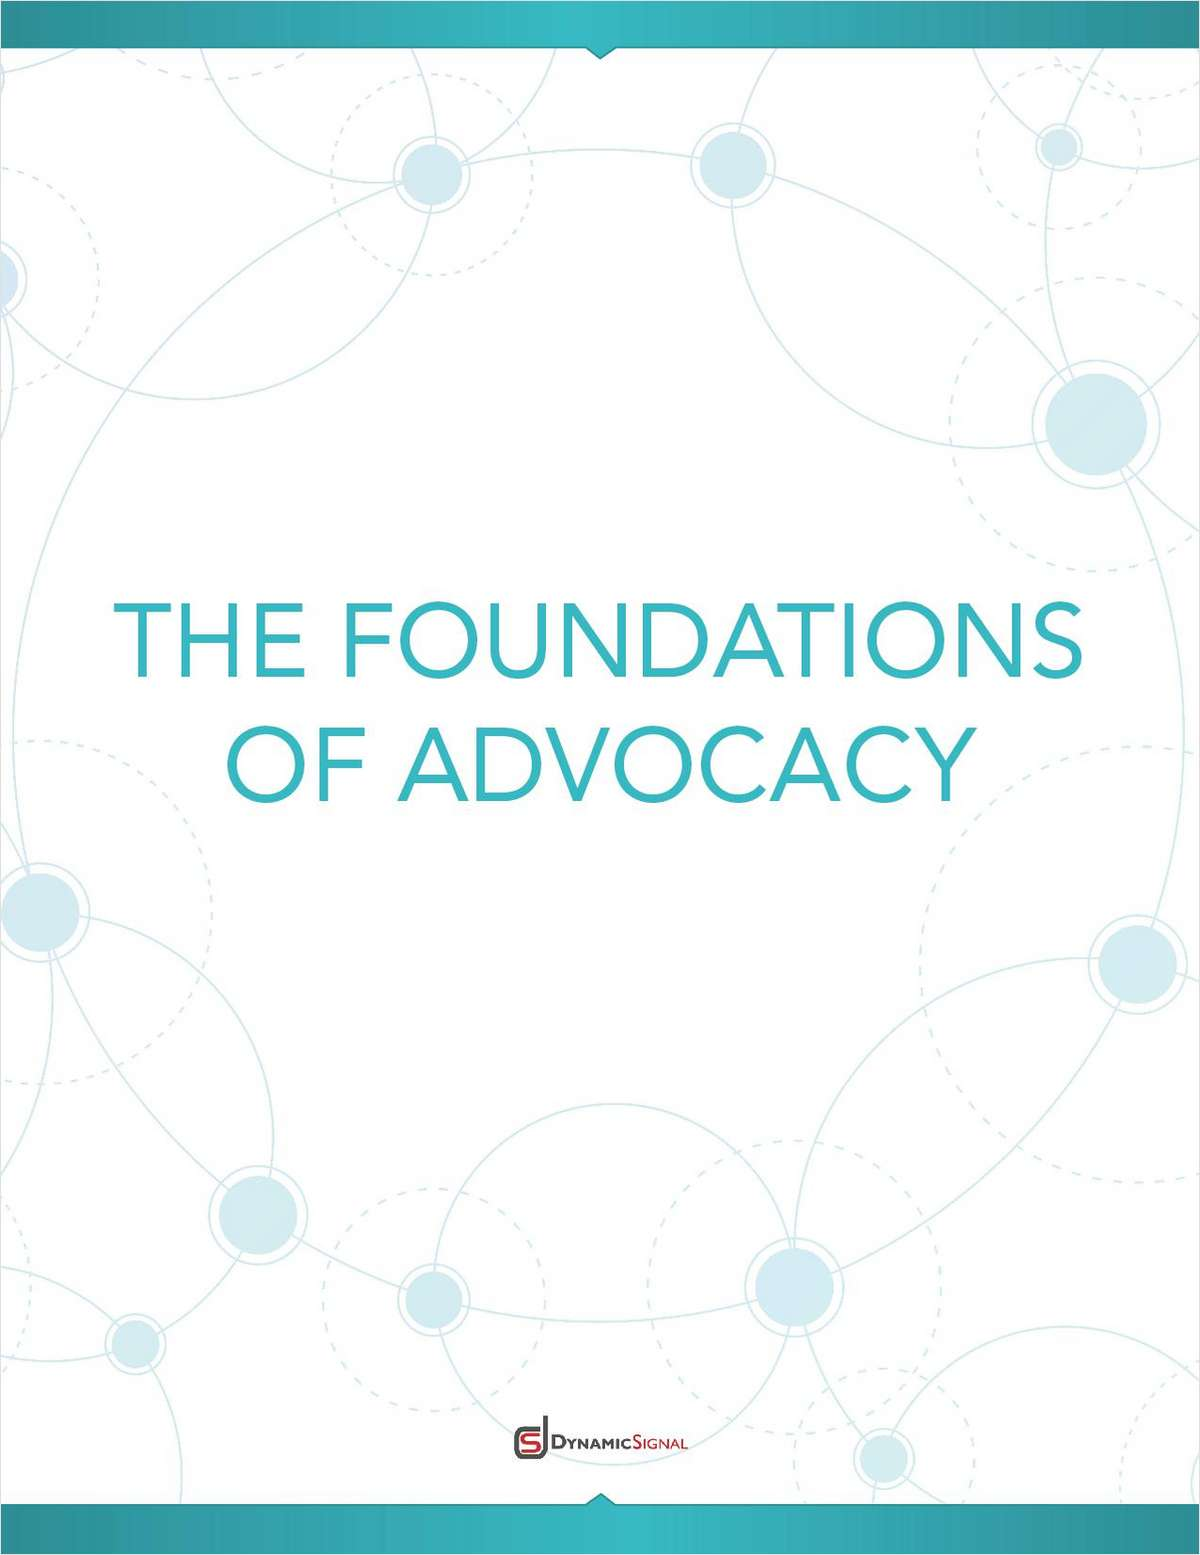 The Foundations of Advocacy Marketing